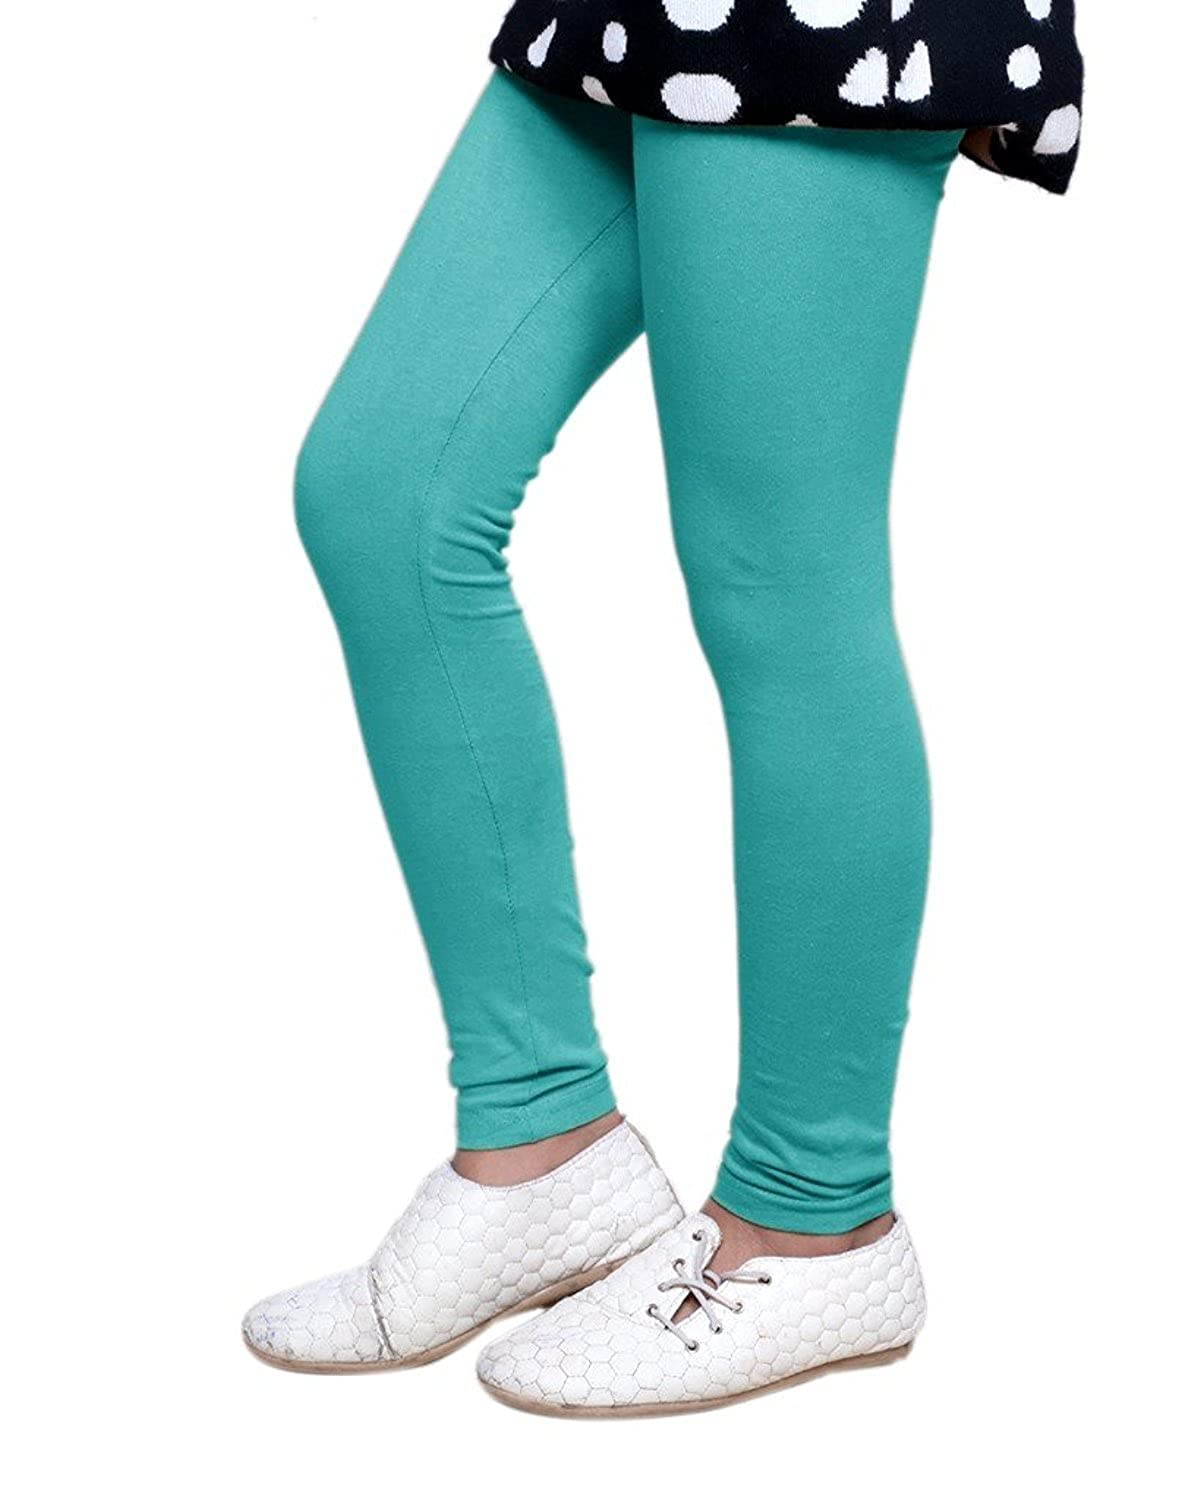 Indistar Girls 2 Cotton Solid Legging Pants /_Multicolor/_Size-7-8 Years/_71414151619-IW-P4-30 Pack Of 4 and 2 Cotton Printed Legging Pants